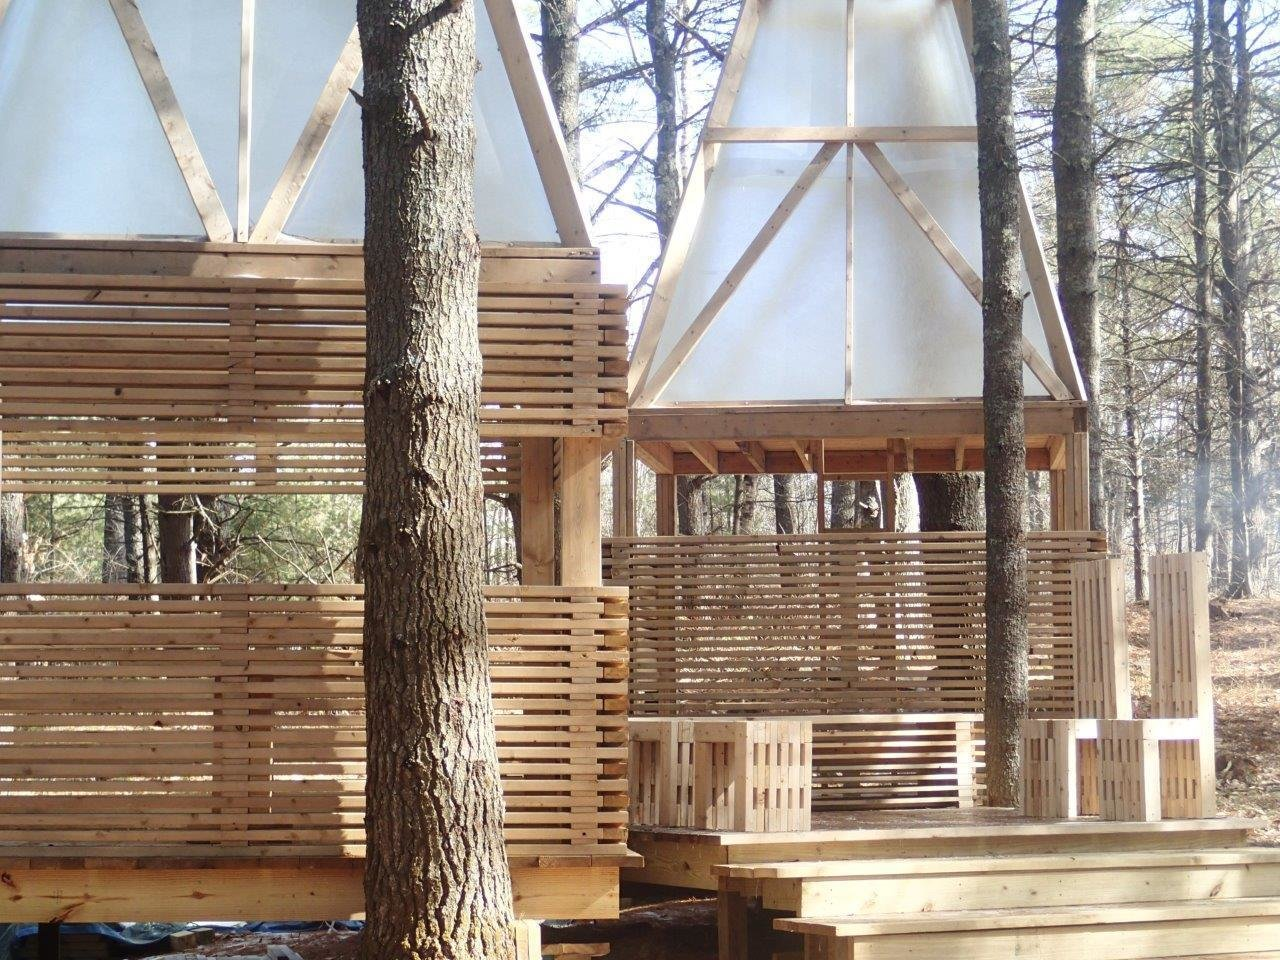 This year's program focused on building a sleeping structure for  Photo 3 of 5 in Shop Class Rebooted: Students Built This Woodland Retreat